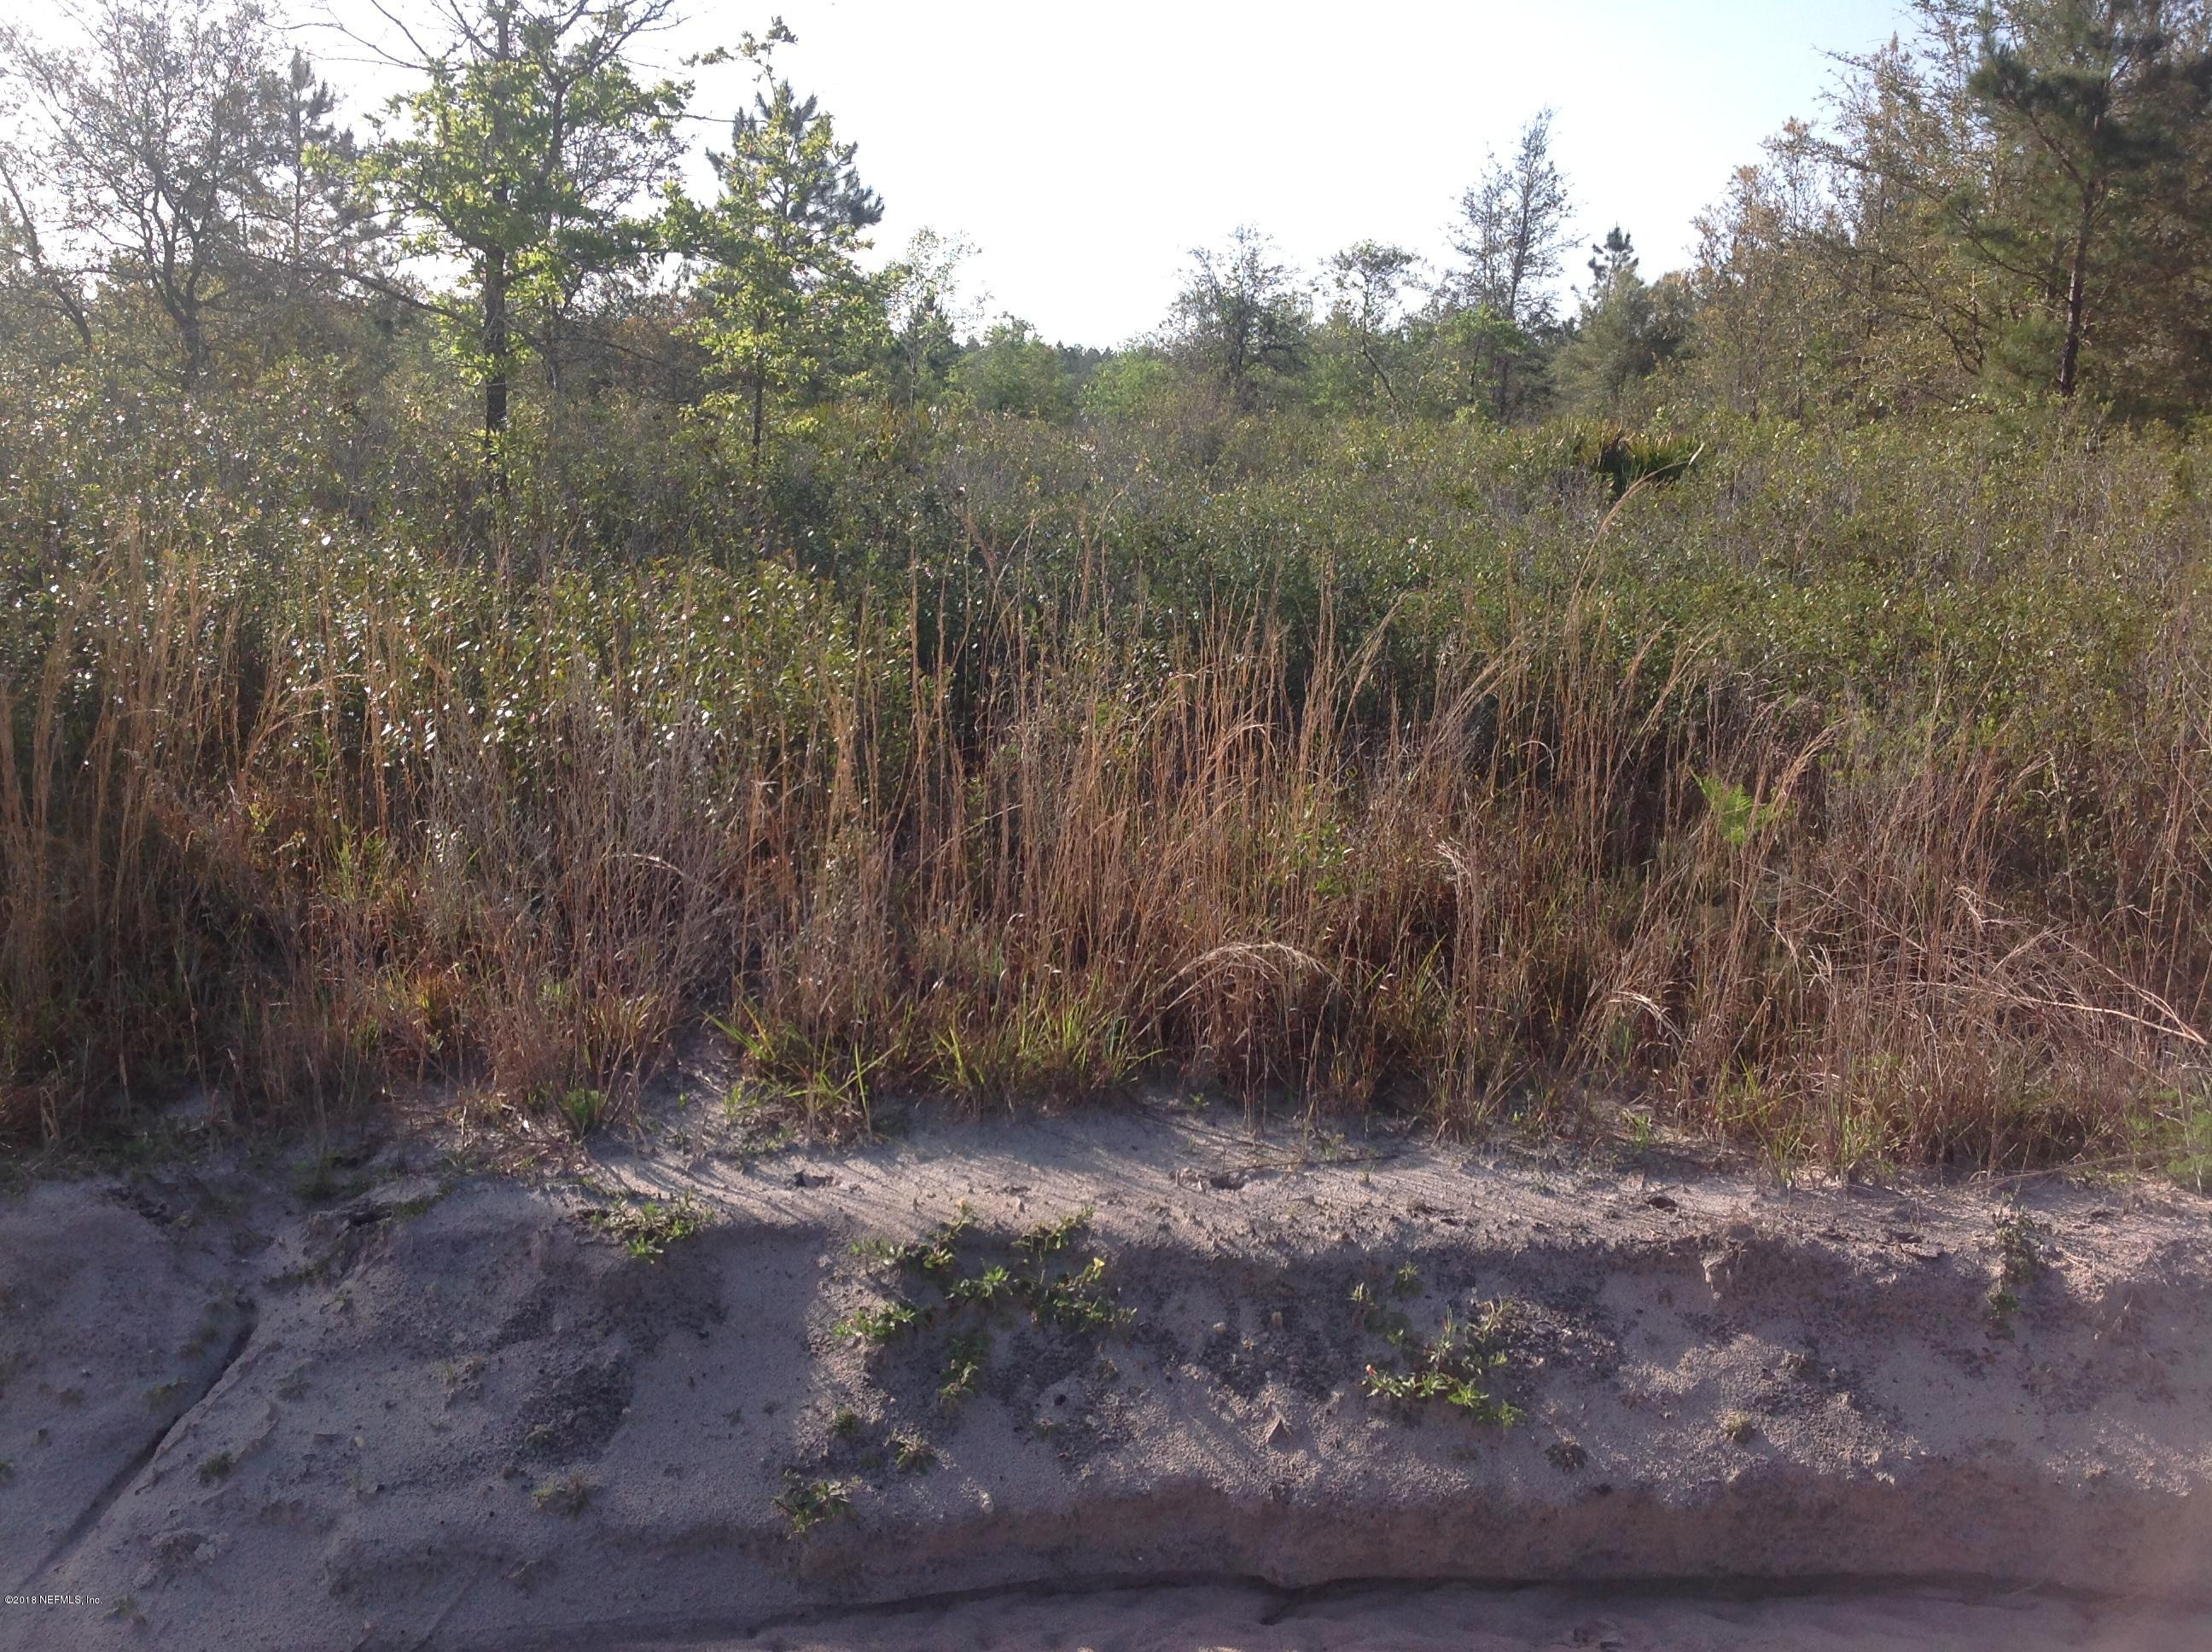 0 TURNER CEMETERY, GLEN ST. MARY, FLORIDA 32040, ,Vacant land,For sale,TURNER CEMETERY,933236